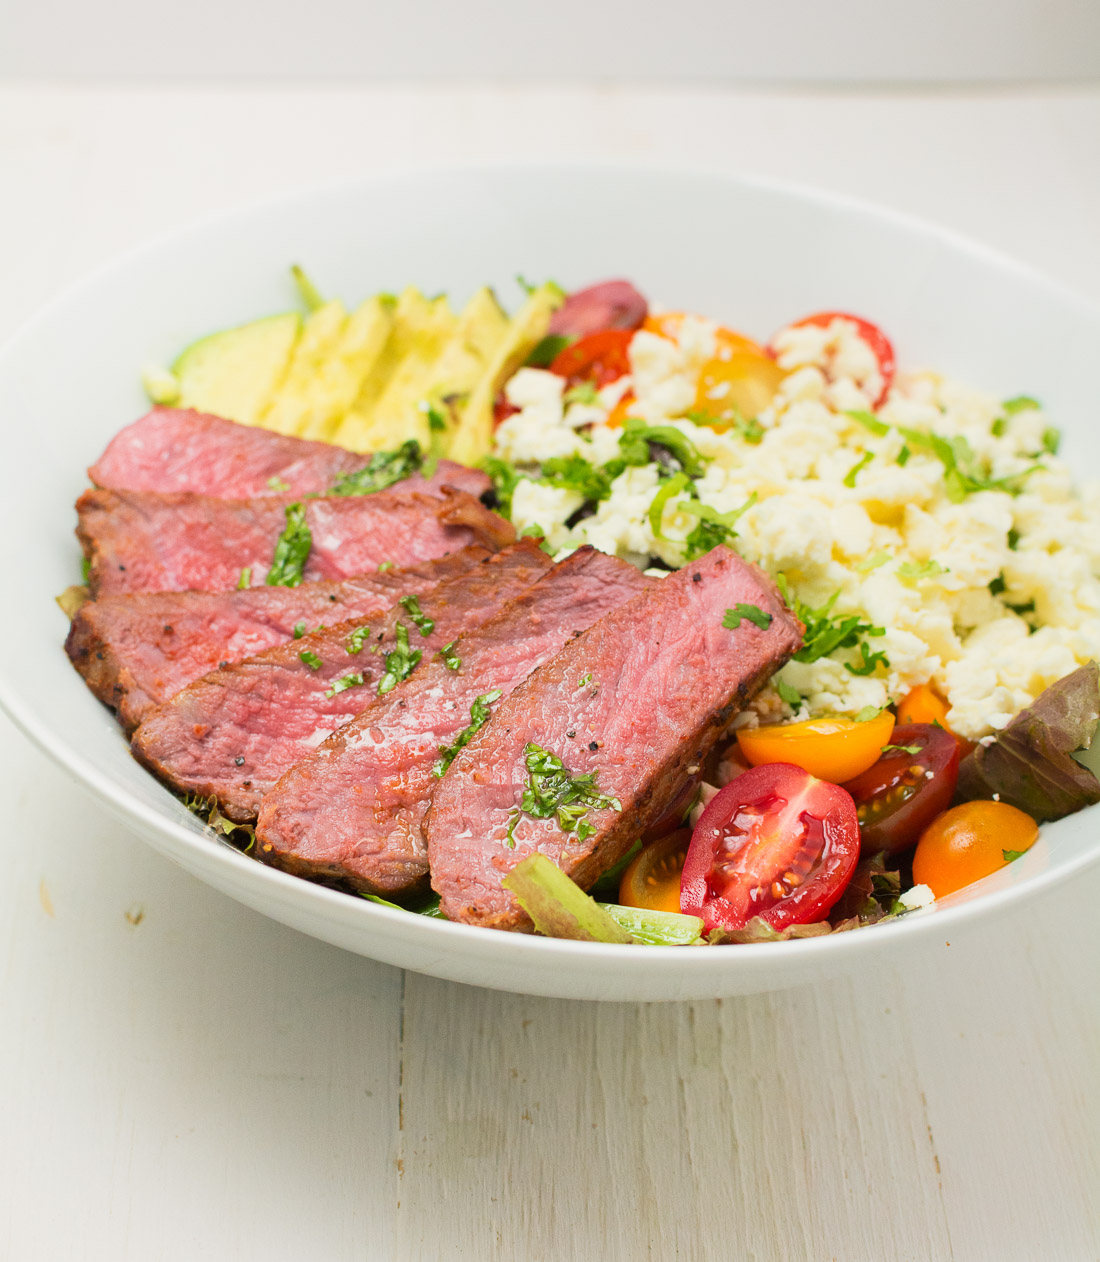 Sous-vide your steaks then sear for perfect steak salad/